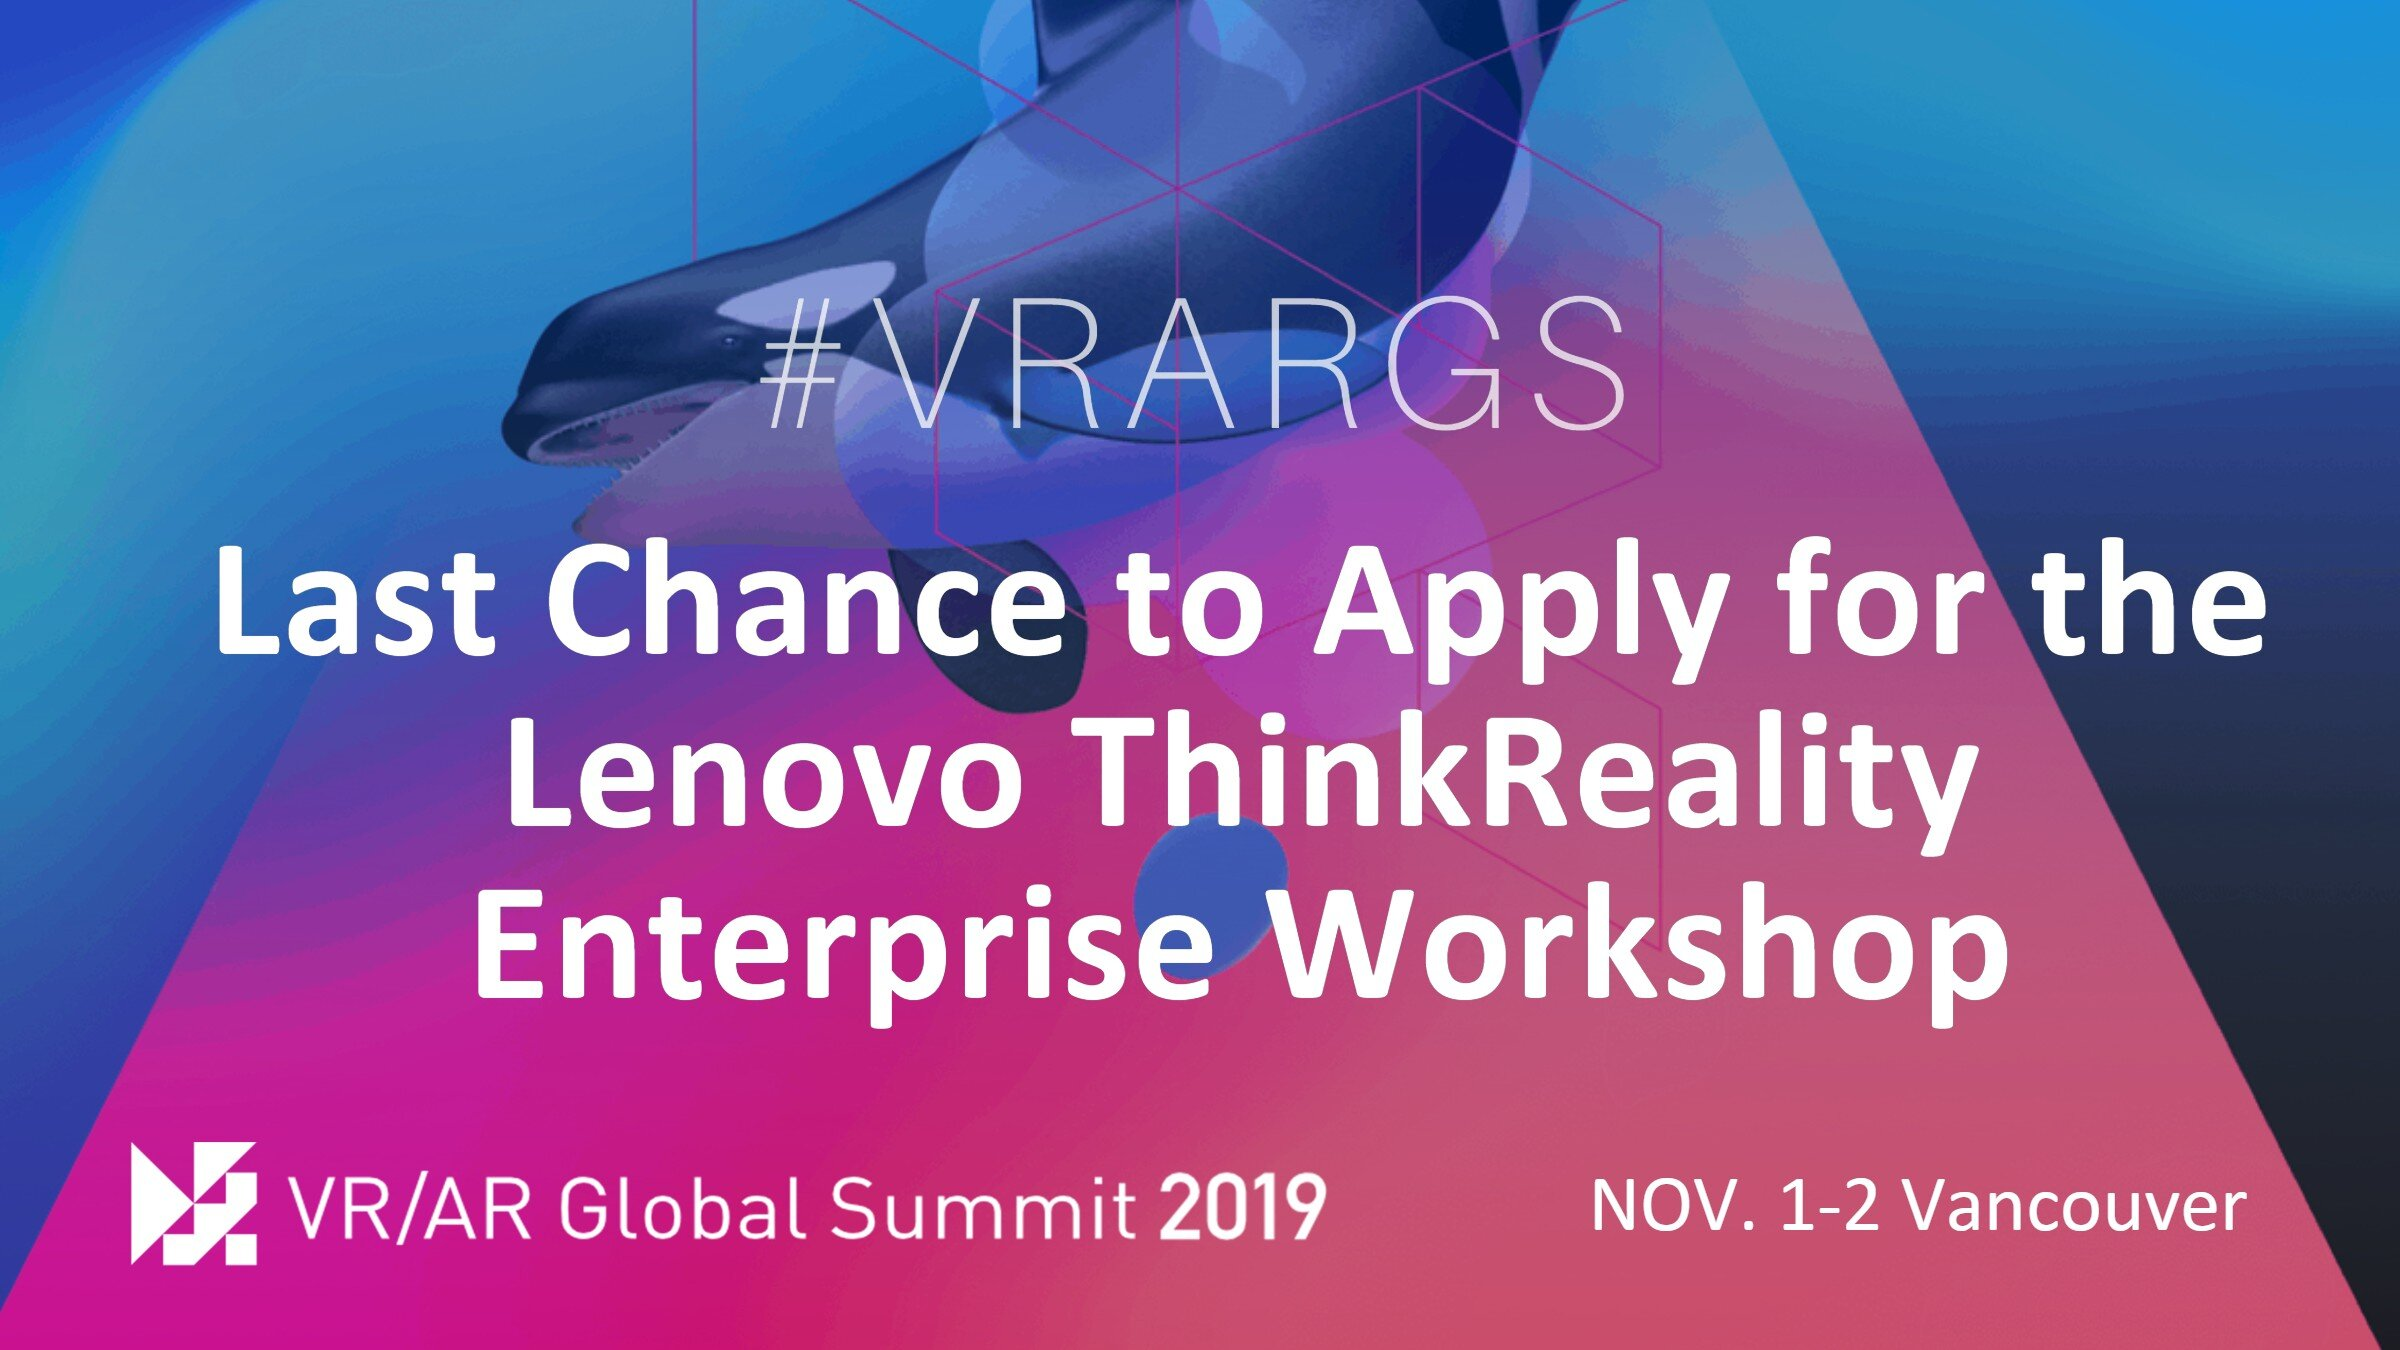 VRARA-Global-Summit-VRARGS-Vancouver-Spatial-Computing-Spatial-Immersive-Technology-VR-Vancouver-Canada-AR-Spatial-Networks.jpg